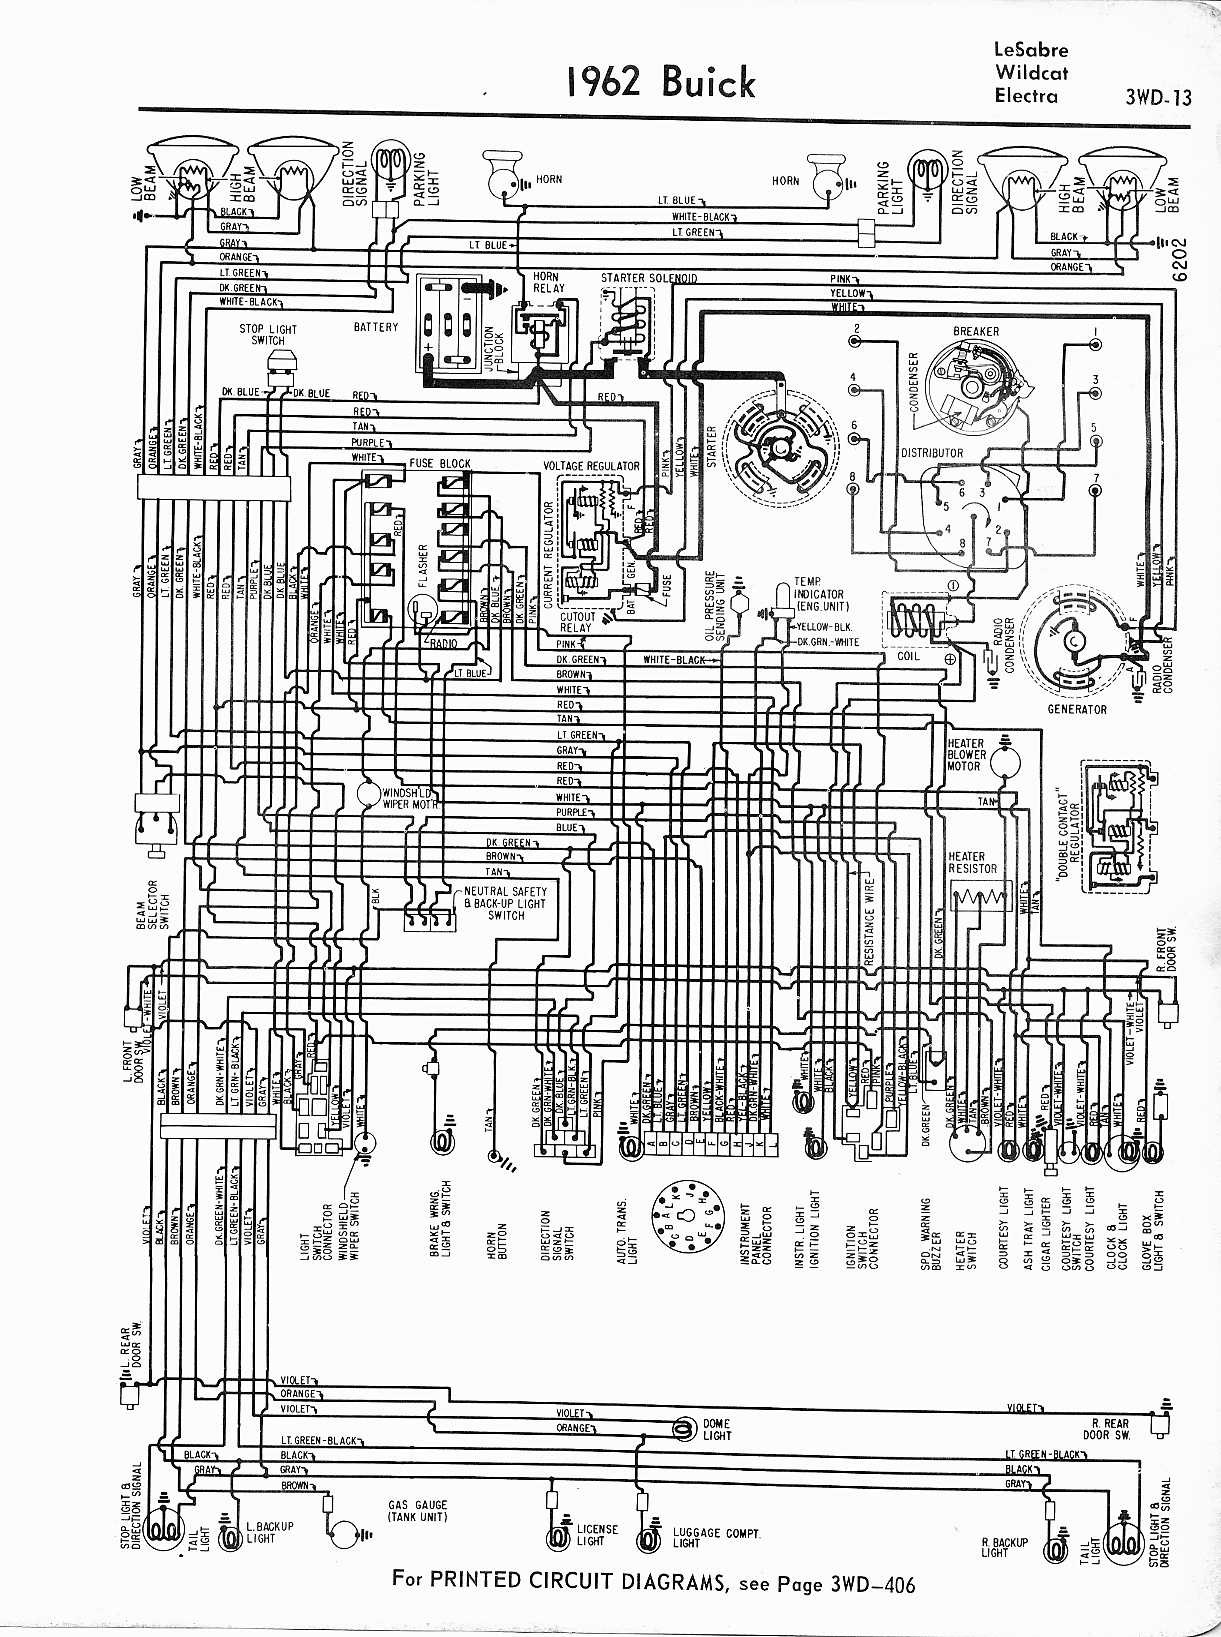 1972 Buick Wiring Diagrams Automotive Diagram Of Conic Sections Begeboy Wiring Diagram Source